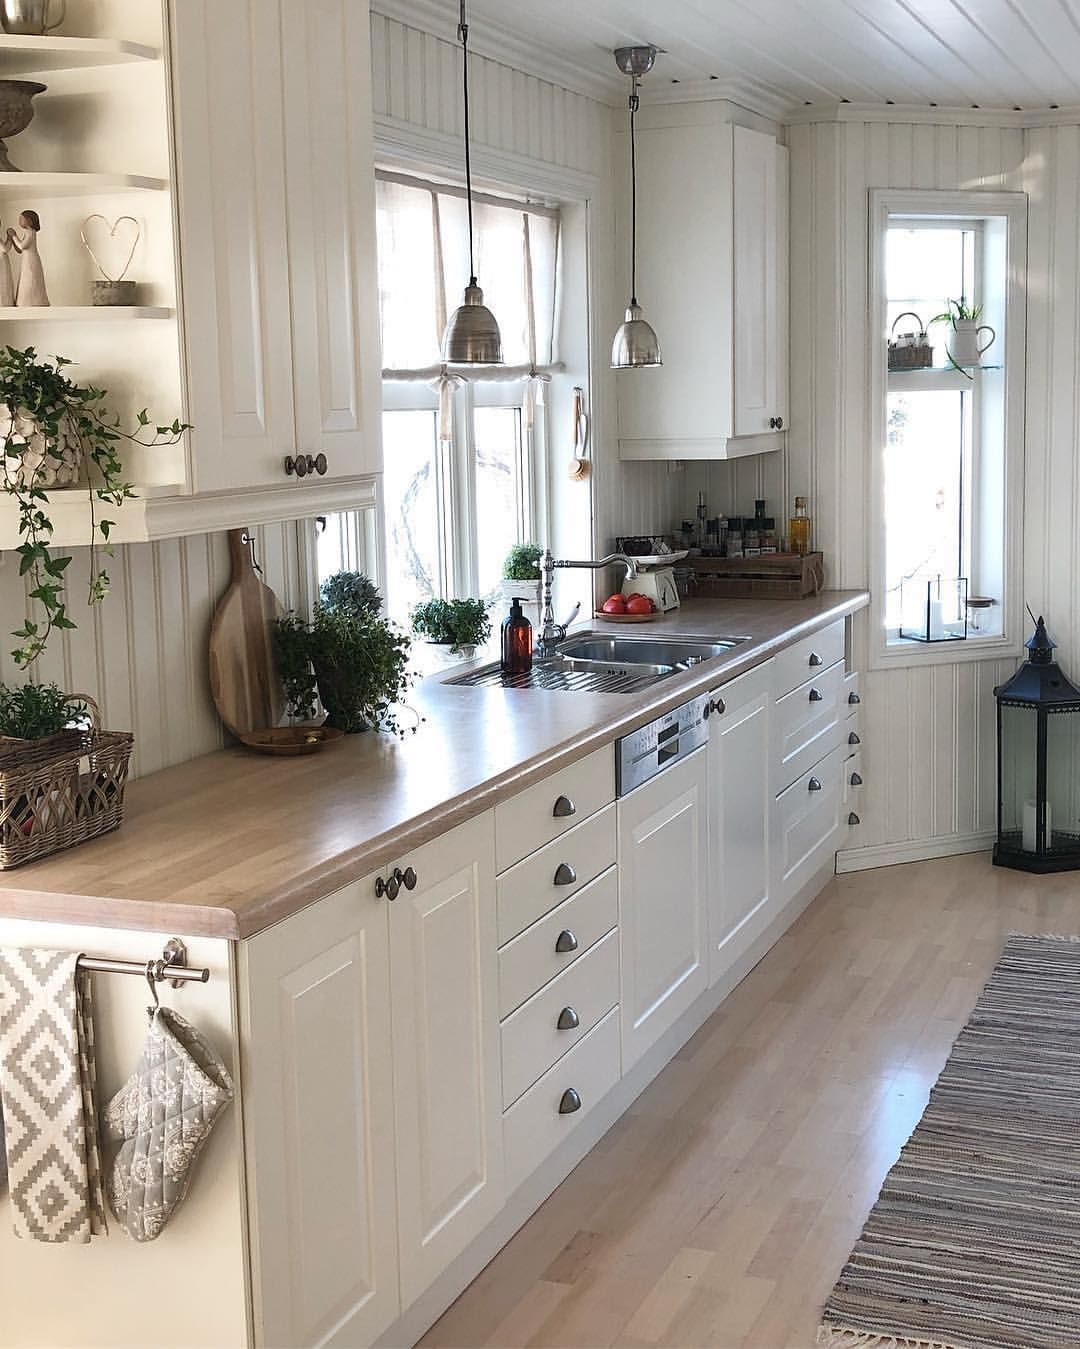 Pin by Emma Hellwarth on Kitchen/dining | Kitchen remodel ...